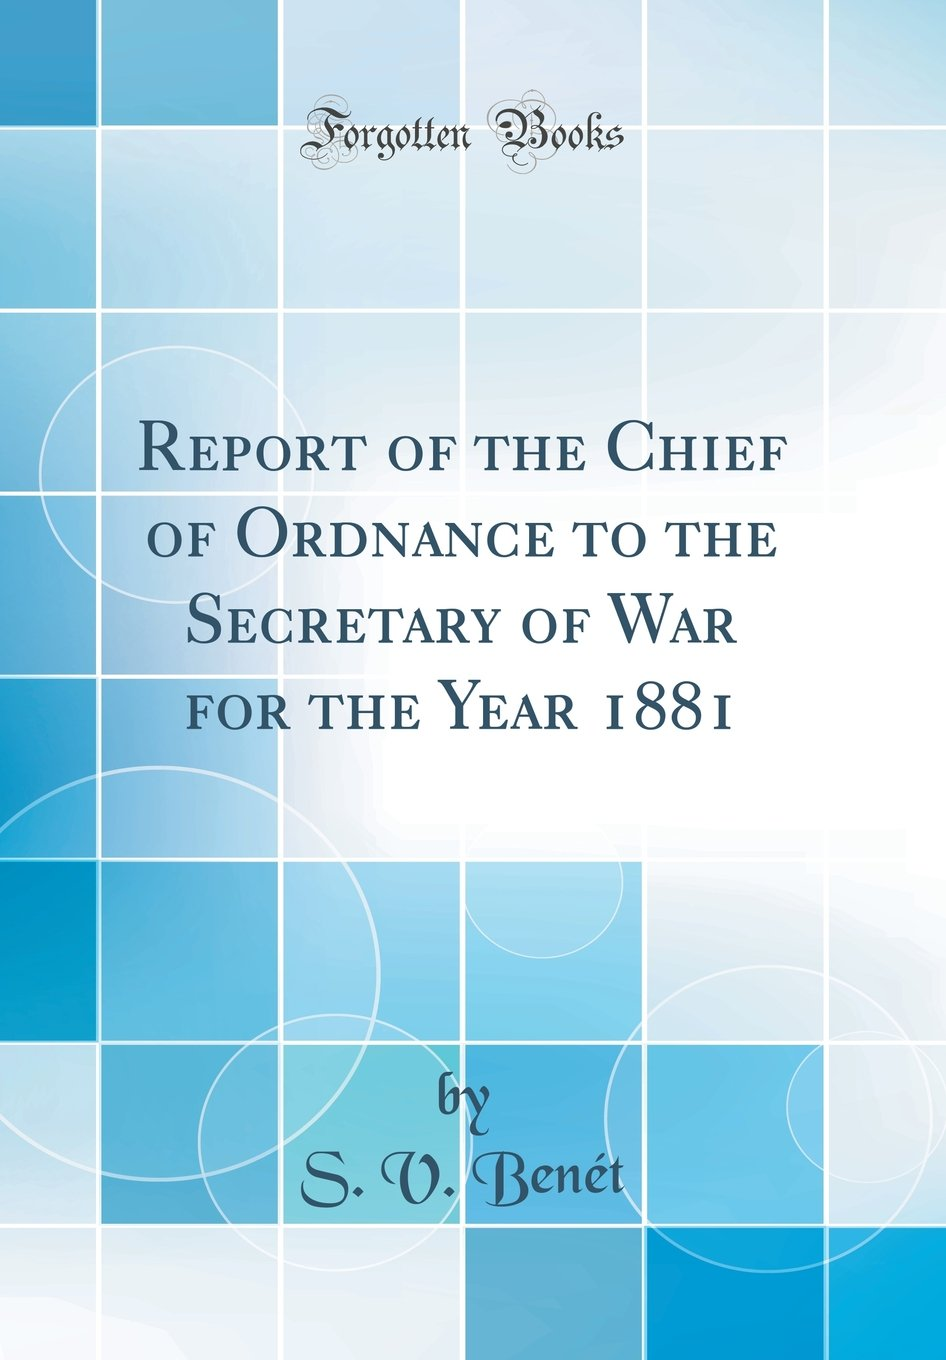 Report of the Chief of Ordnance to the Secretary of War for the Year 1881 (Classic Reprint) pdf epub